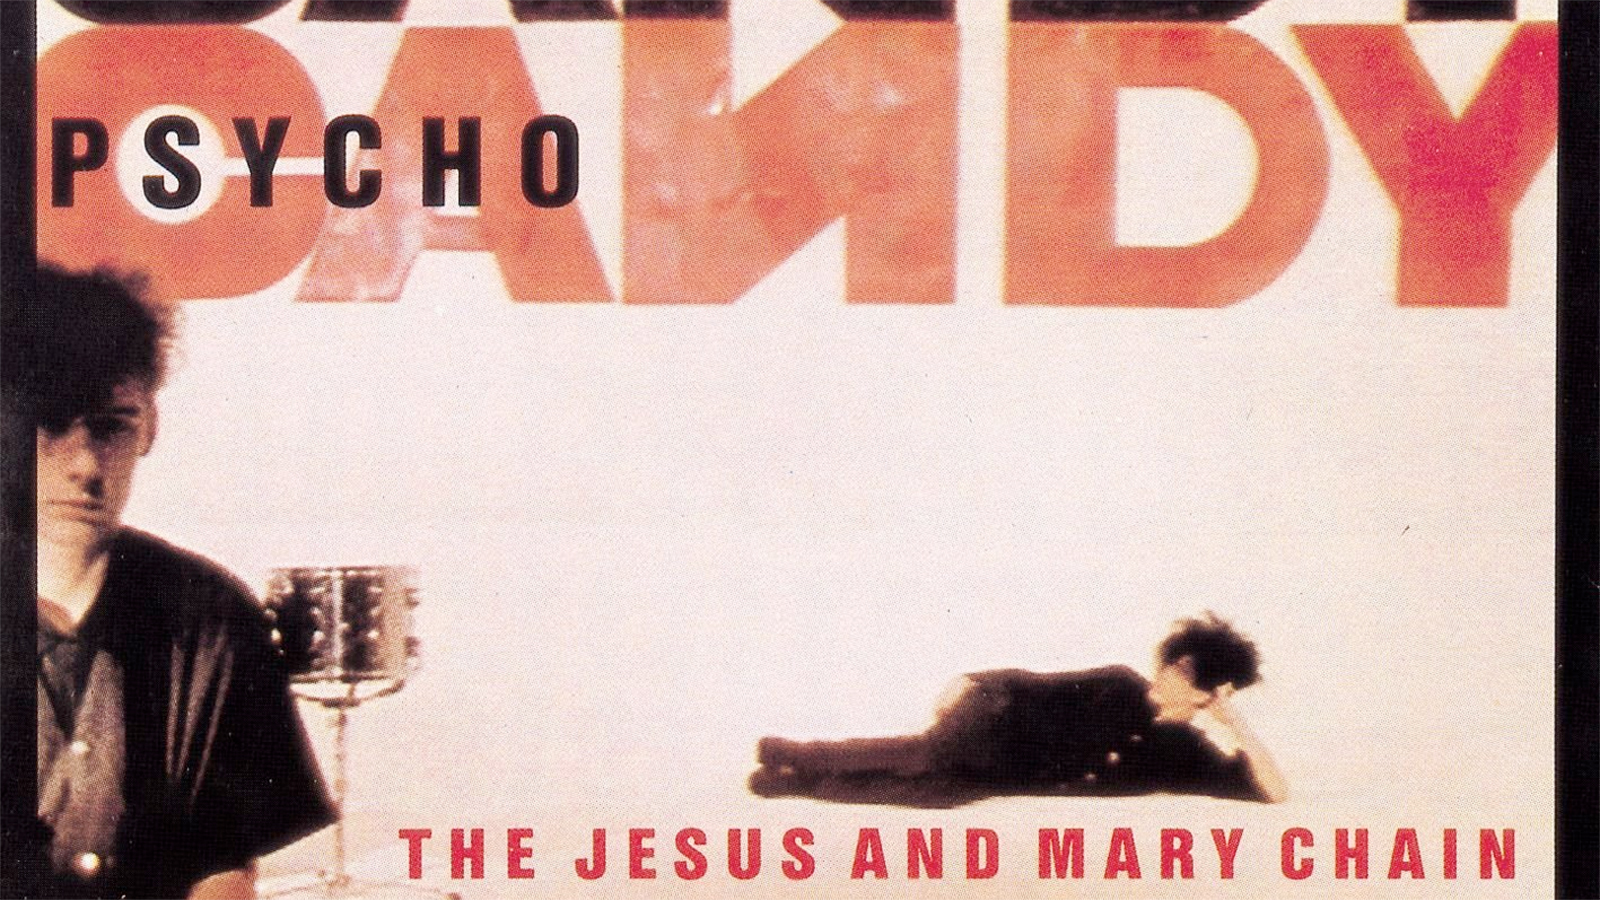 It S Been 30 Years The Jesus And Mary Chain S